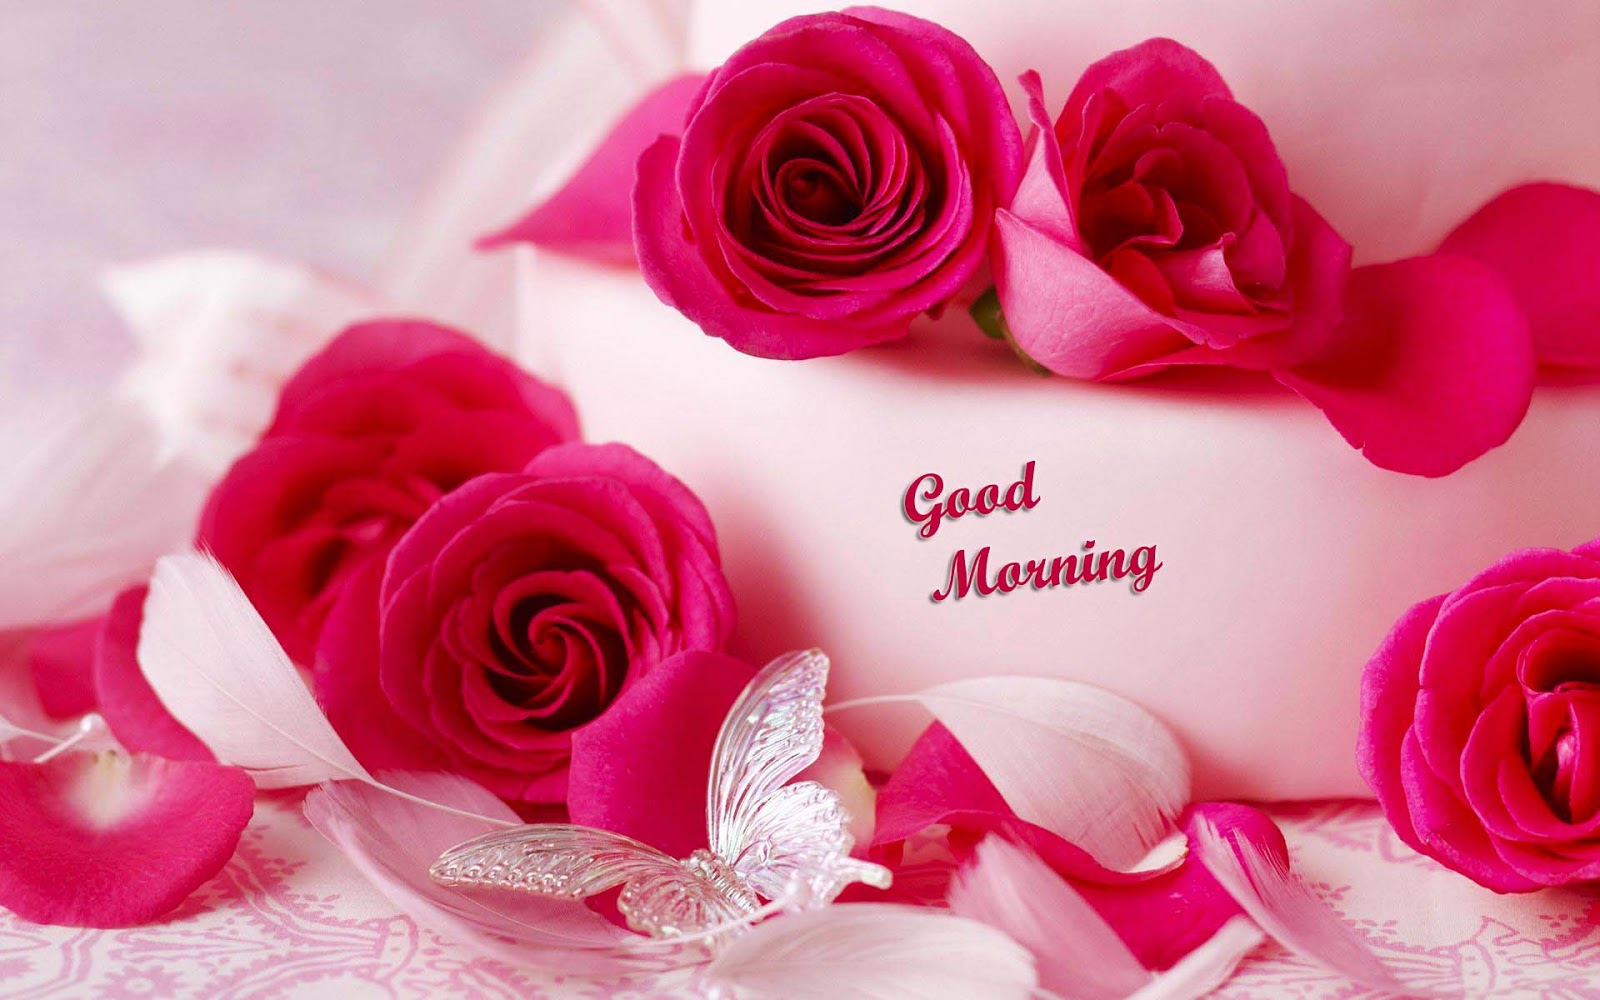 Love Wallpapers Good Morning : Lovely and Beautiful Good Morning Wallpapers ...